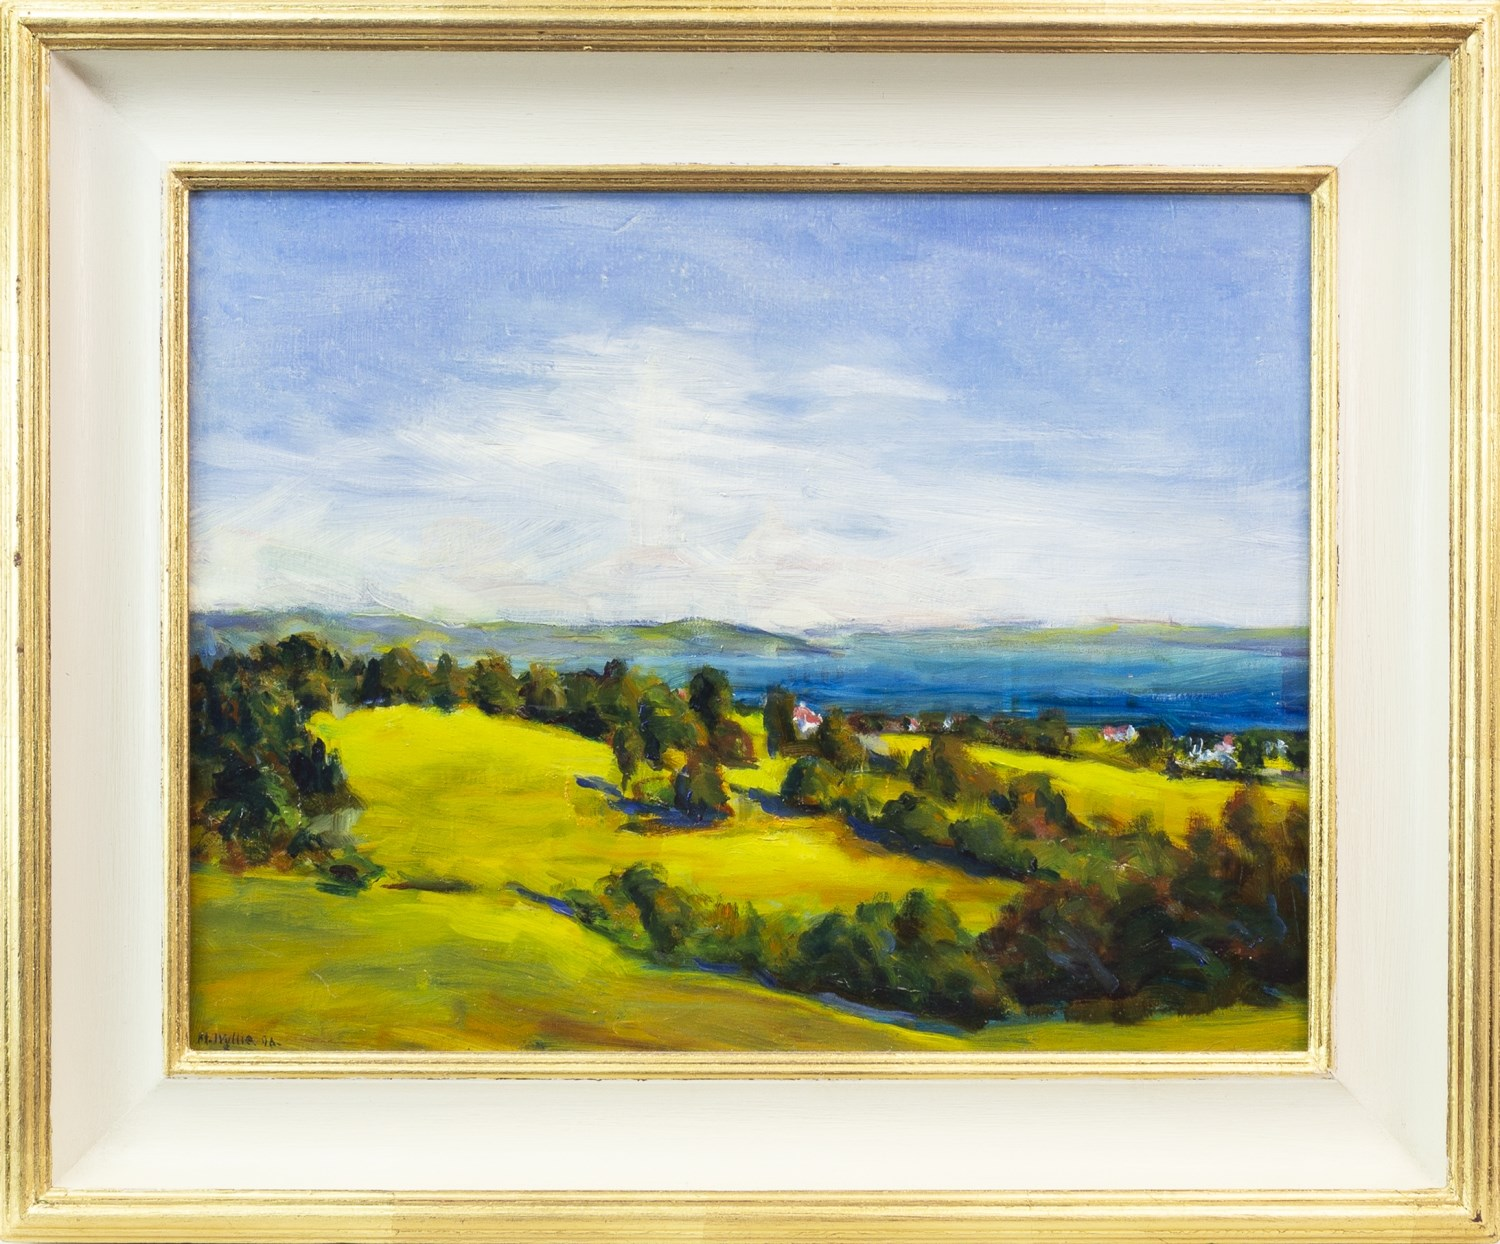 ROSNEATH POINT FROM OLD GREENOCK ROAD, LANGBANK, AN OIL ON BOARD BY MARION WYLLIE